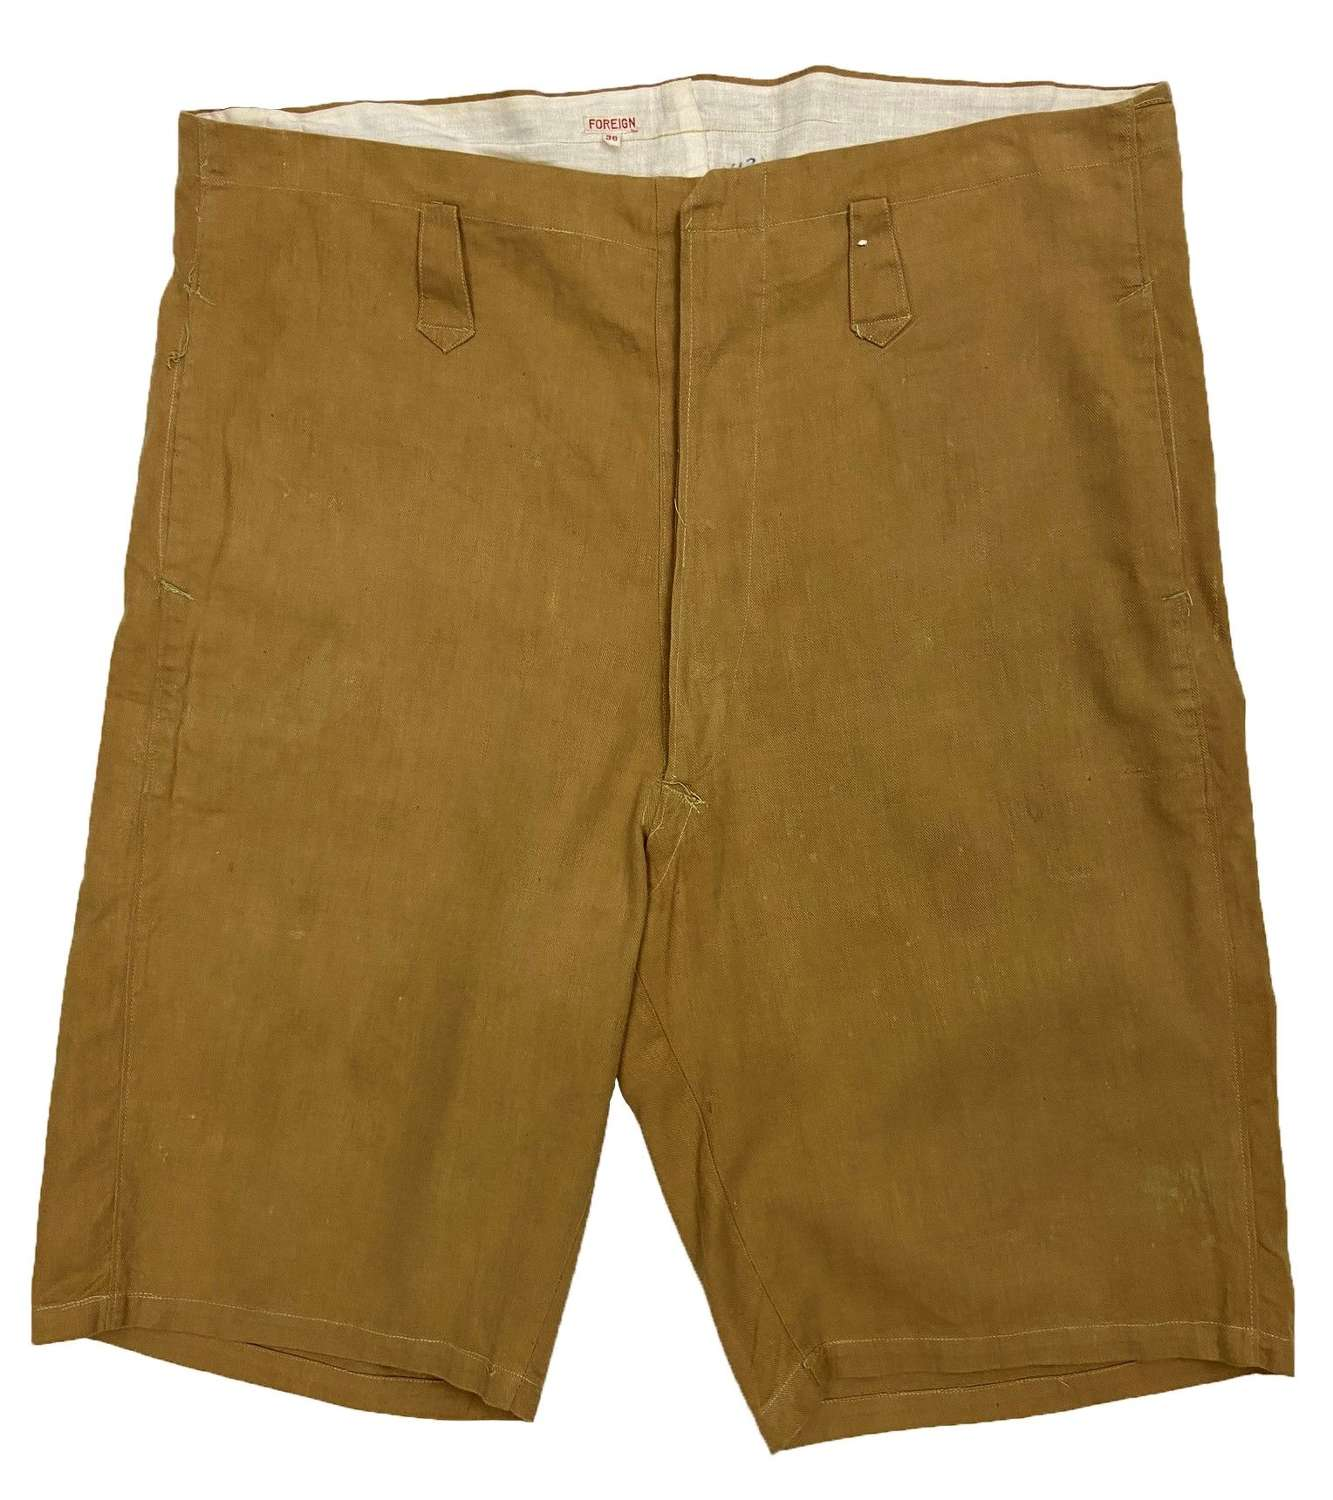 Original 1920s Private Purchase Khaki Drill Shorts